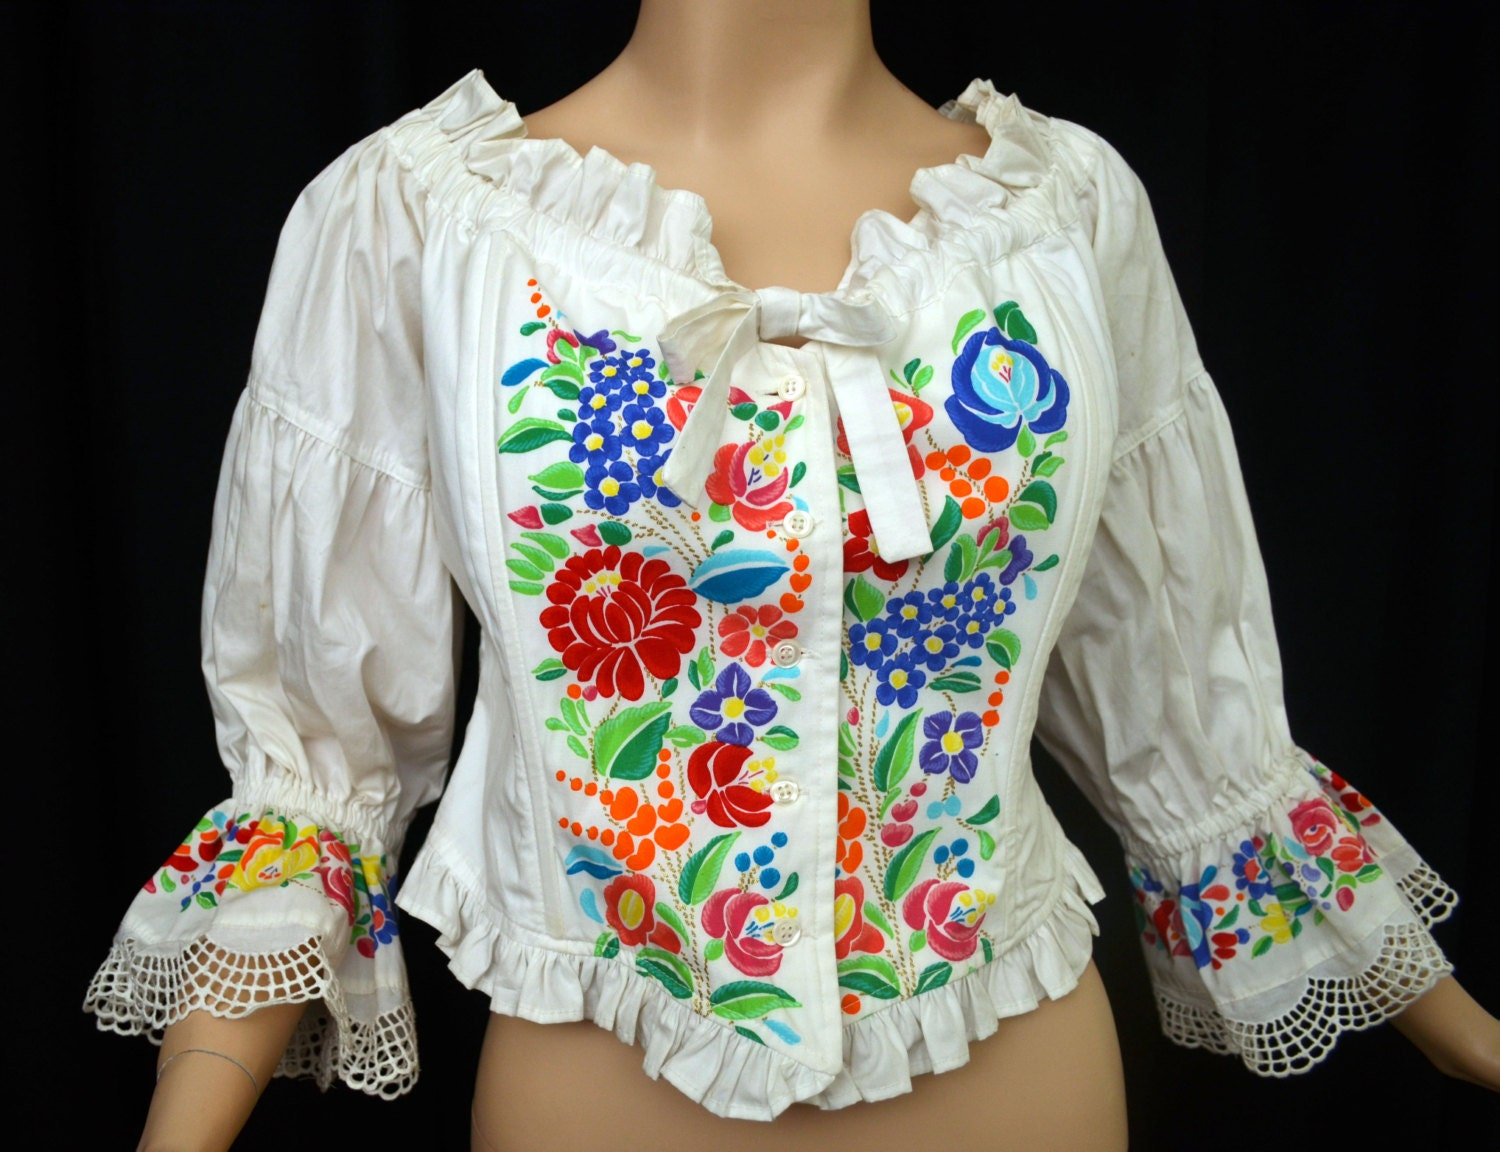 Vintage GOTTEX Hand Painted Top // Bohemian Peasant Blouse // Victorian Inspired Boned Bodice - VintageDevotion